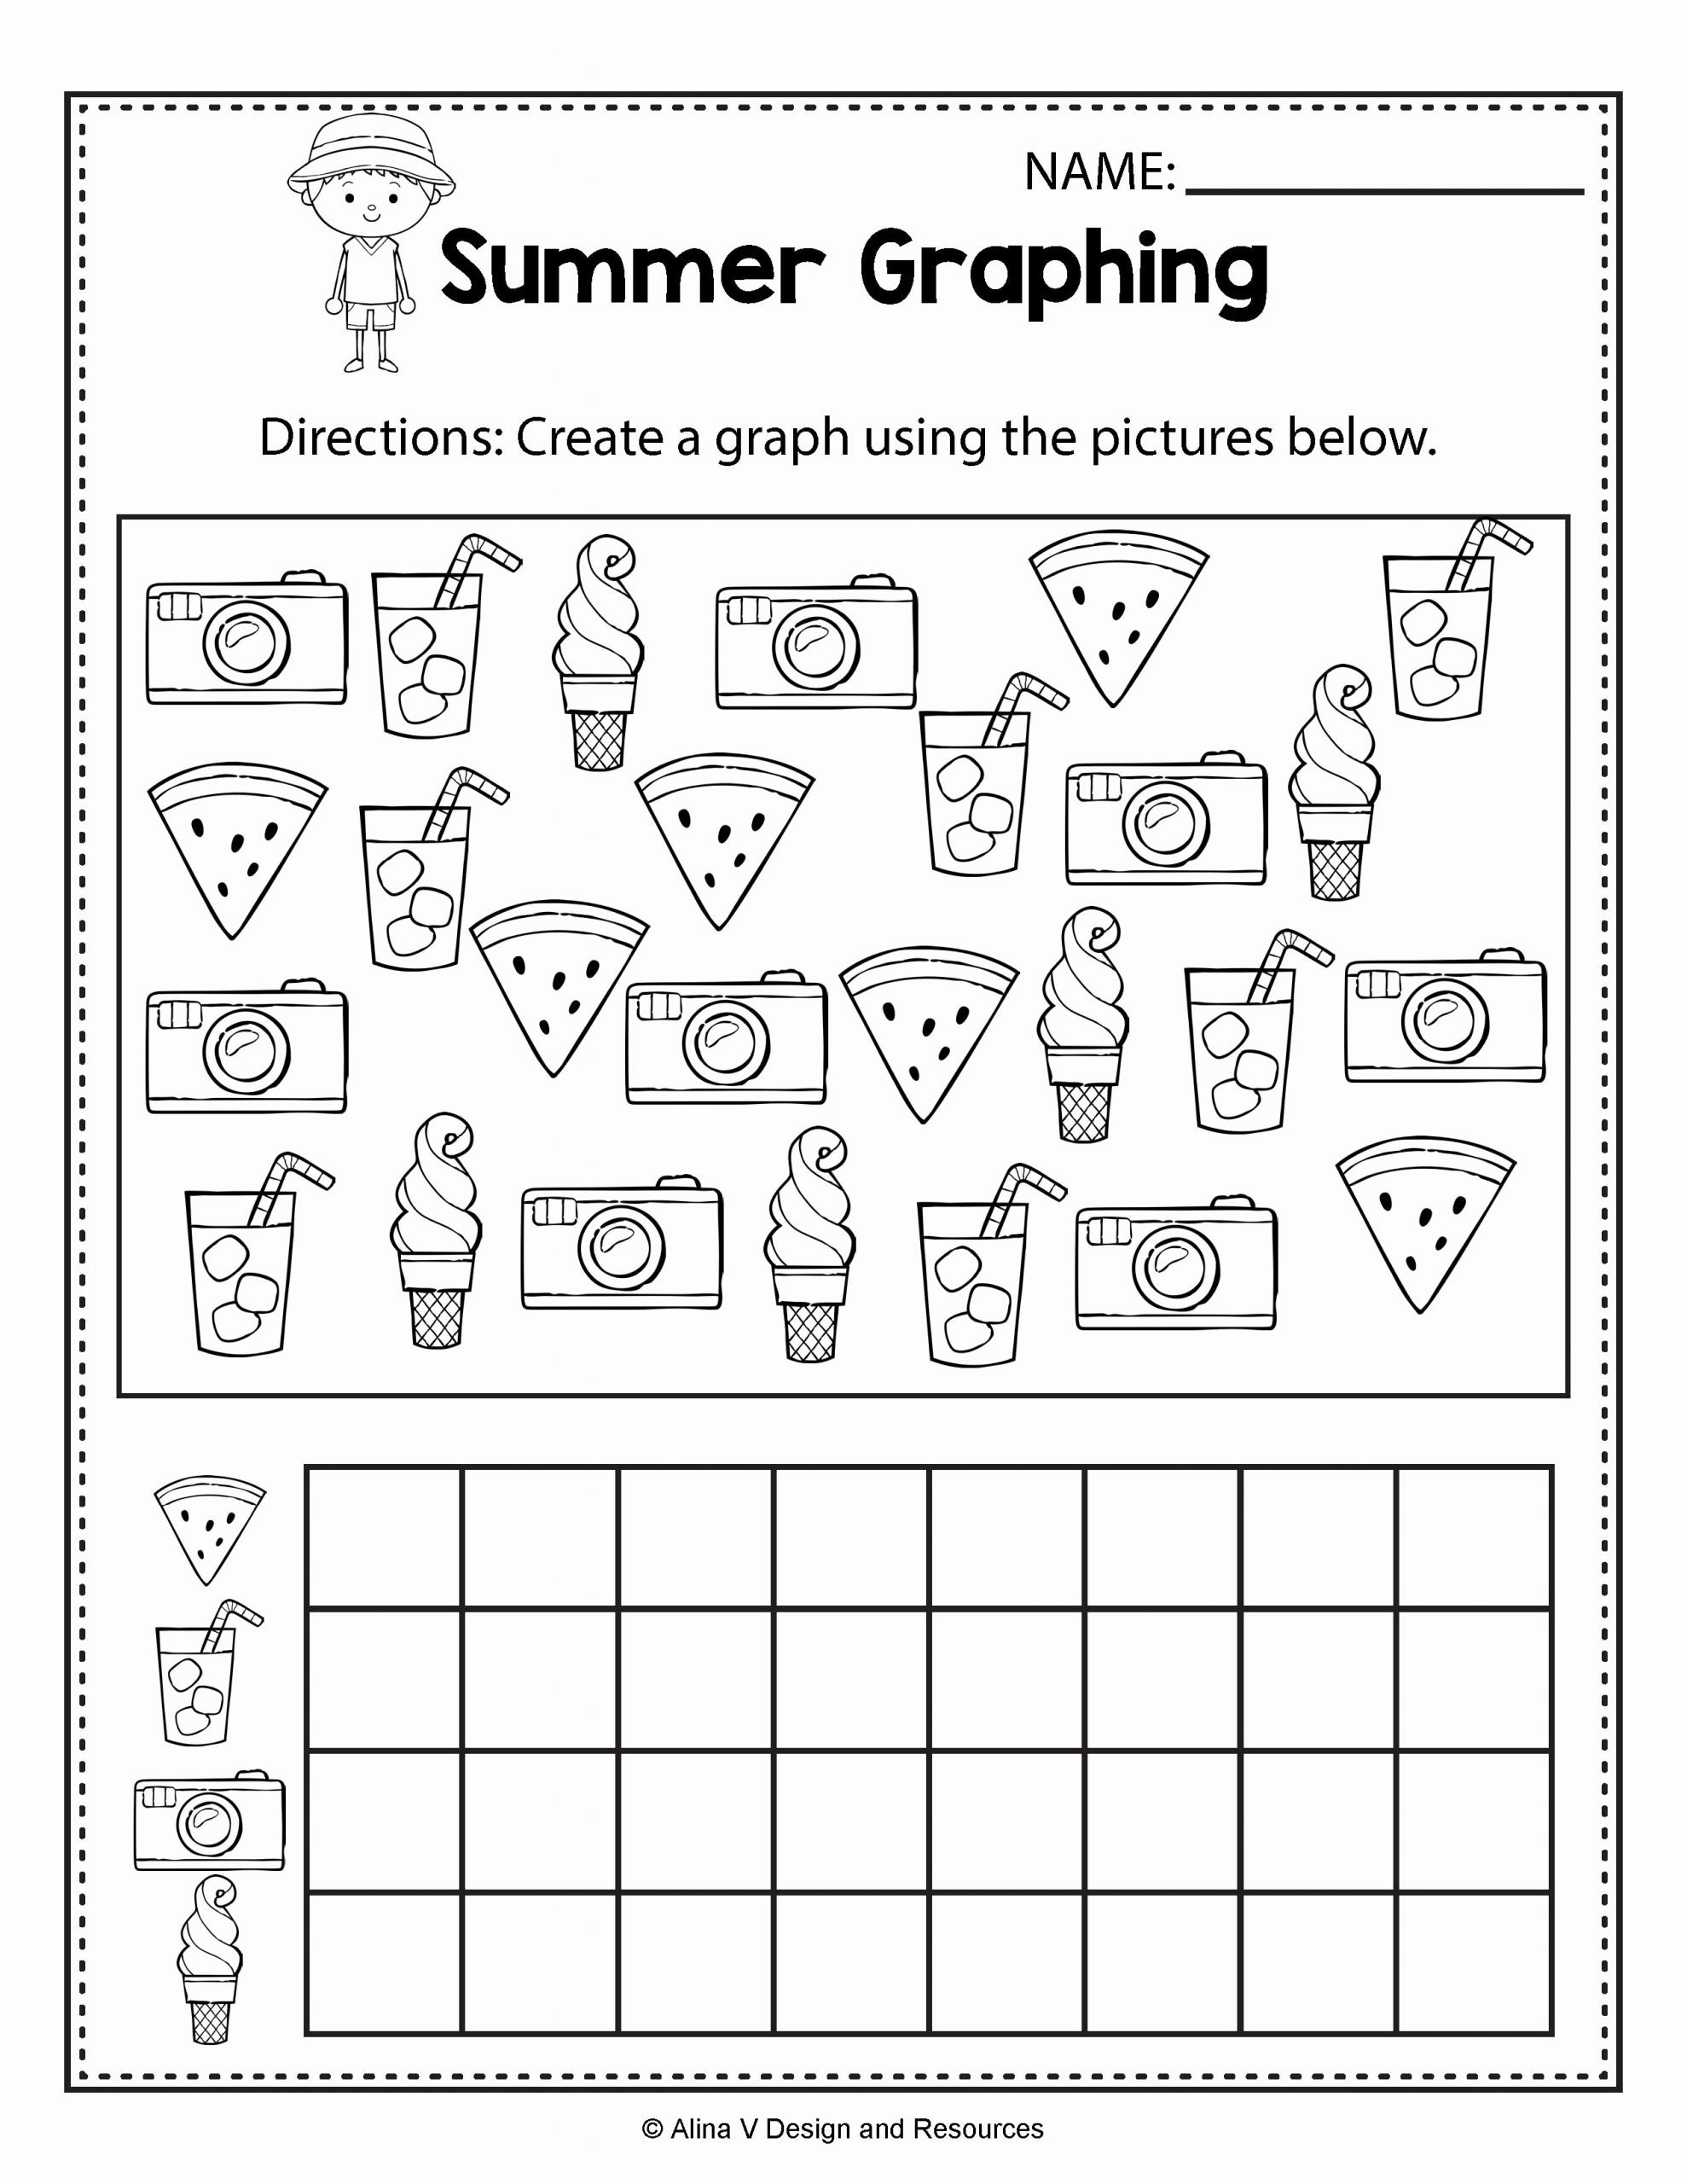 Printable Summer Worksheets for Preschoolers Ideas Summer Graphing Summer Math Worksheets and Activities for